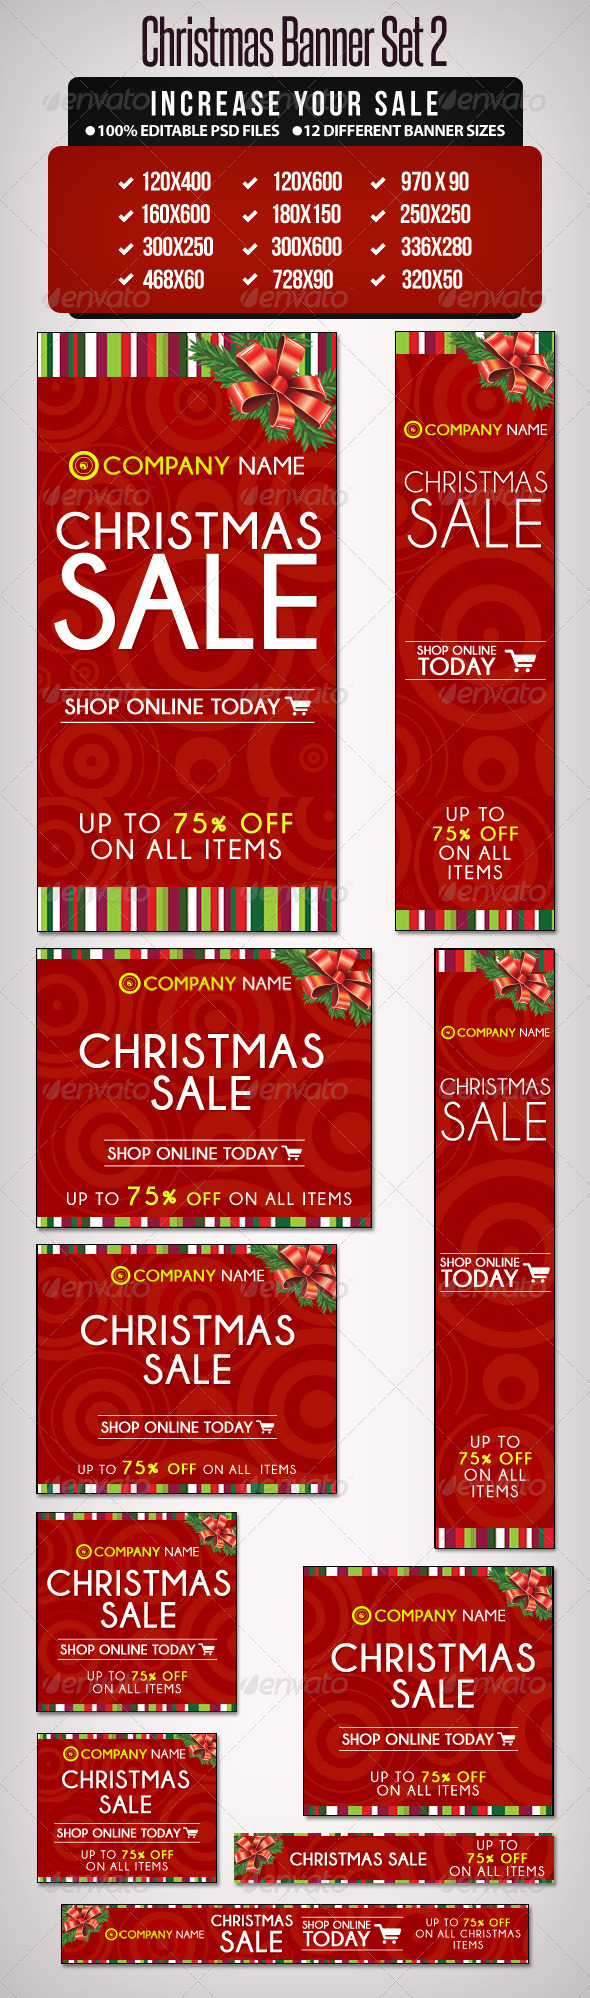 Christmas Banner Set 2 - 12 Sizes - Banners & Ads Web Elements